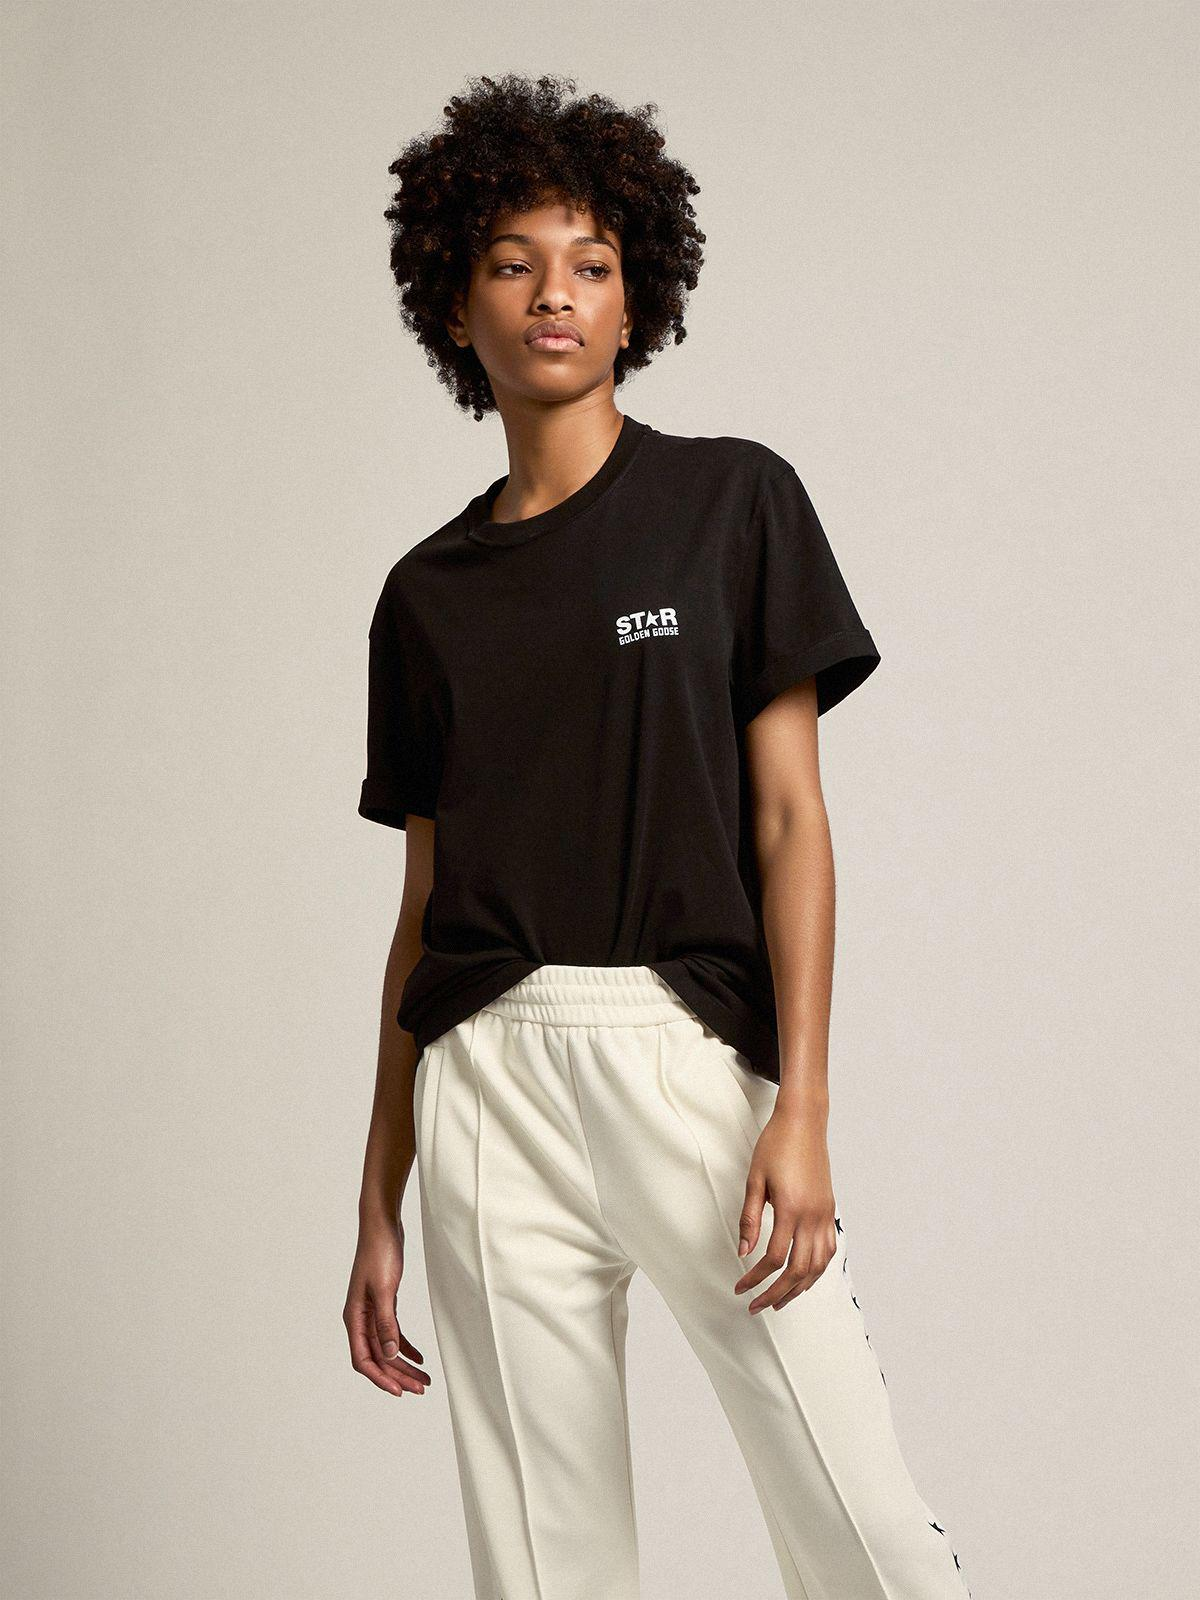 Black Star Collection T-shirt with contrasting white logo and star